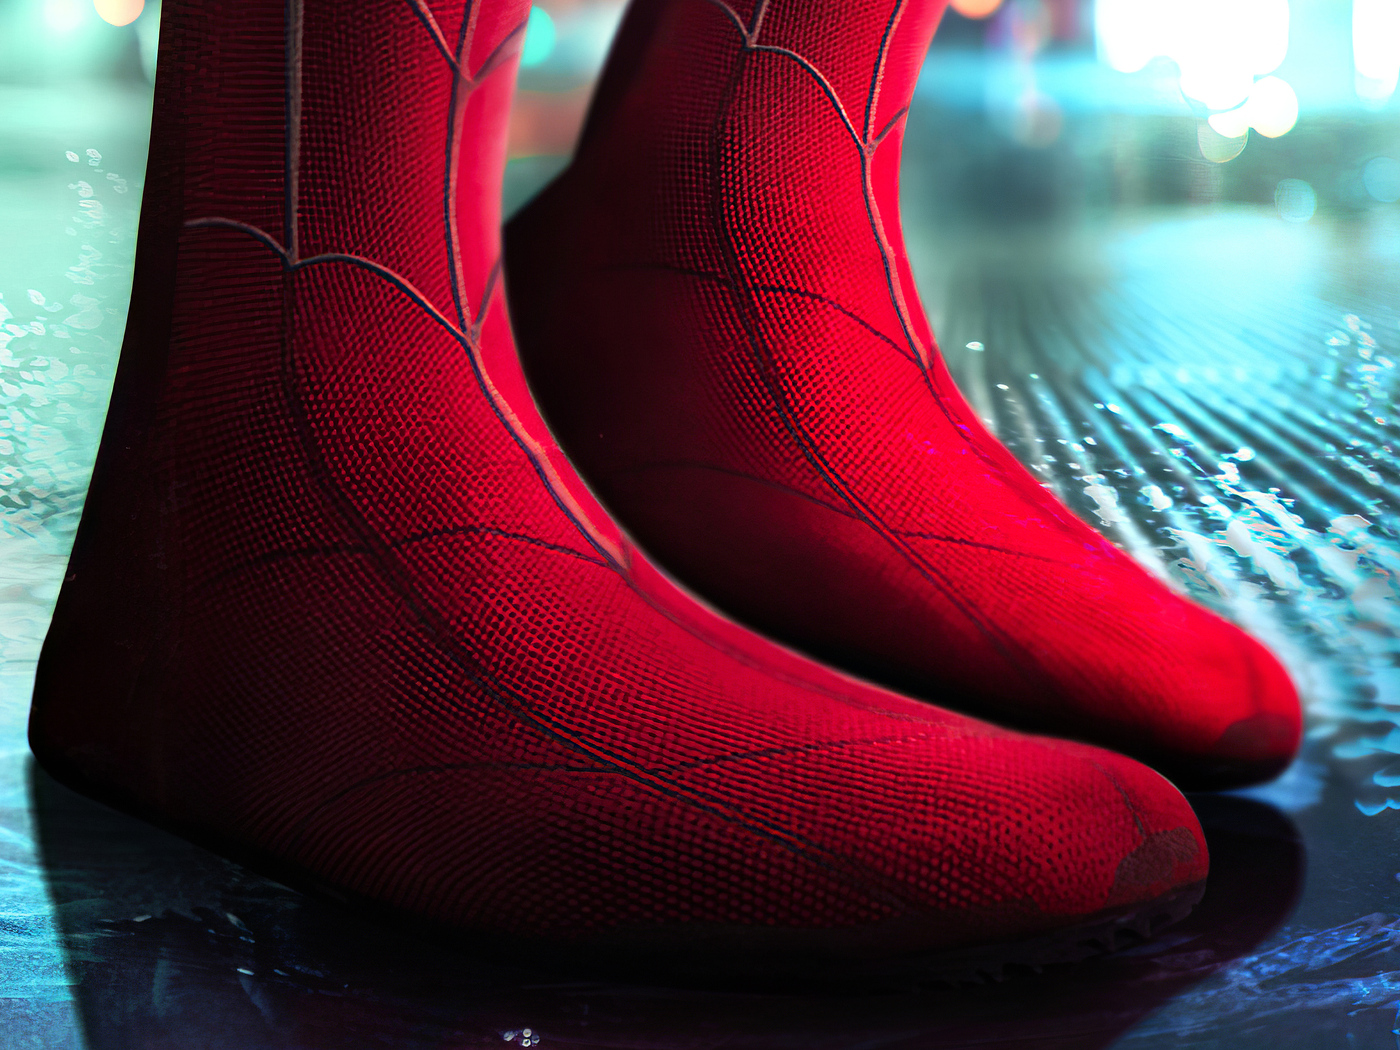 spiderman-homecoming-boots-4k-se.jpg